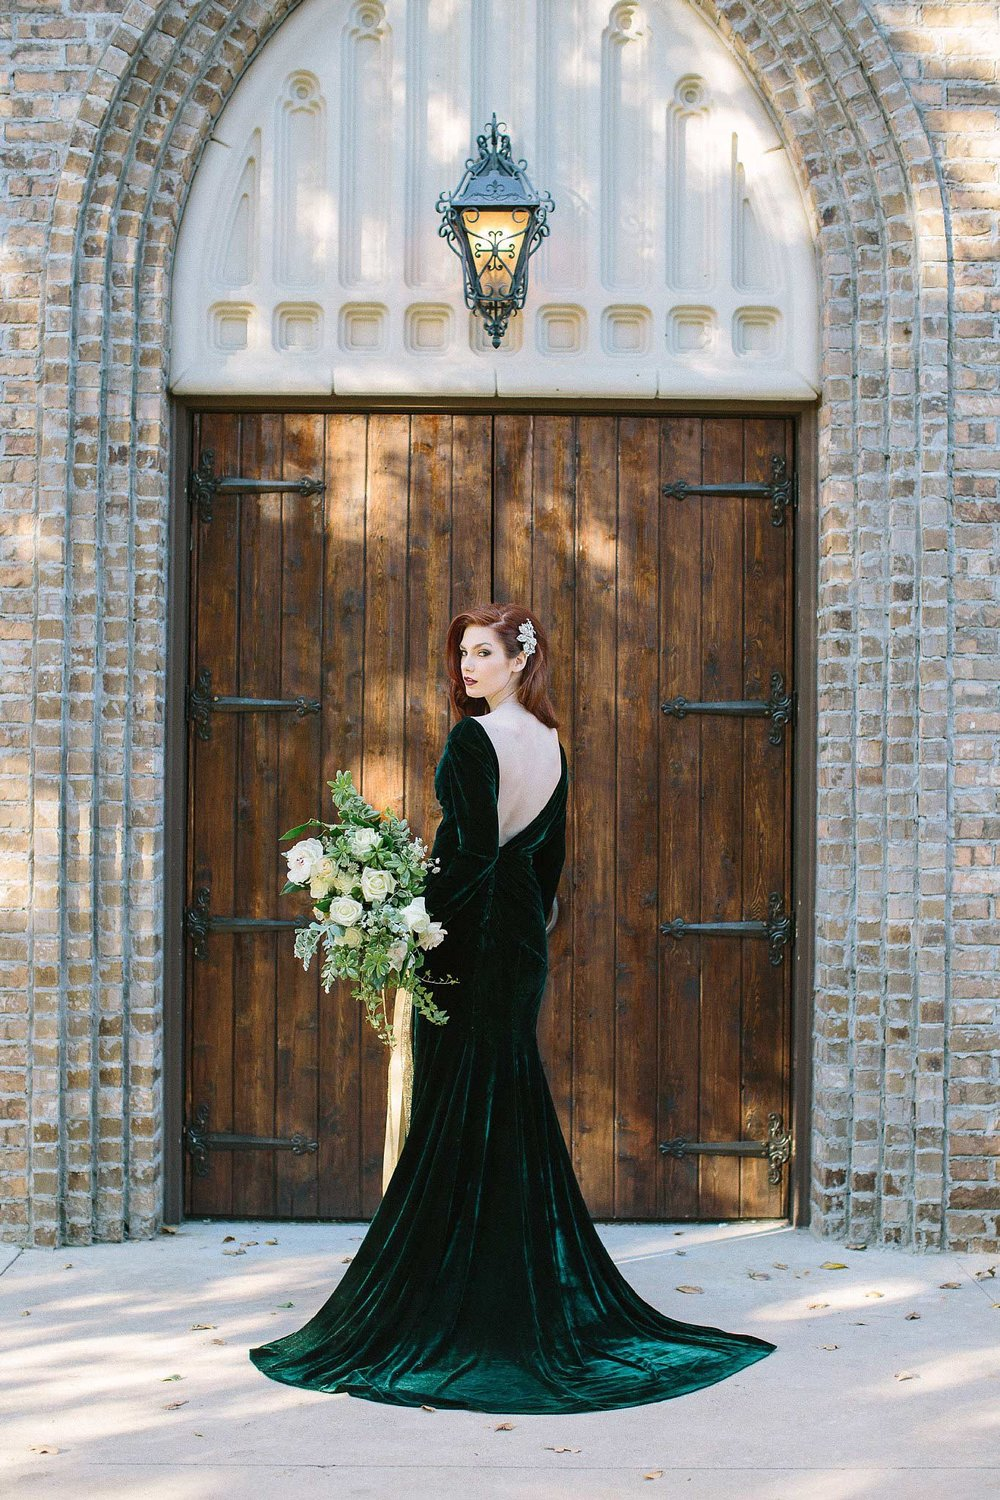 aristide mansfield wooden door entry with bridesmaid in green velvet dress